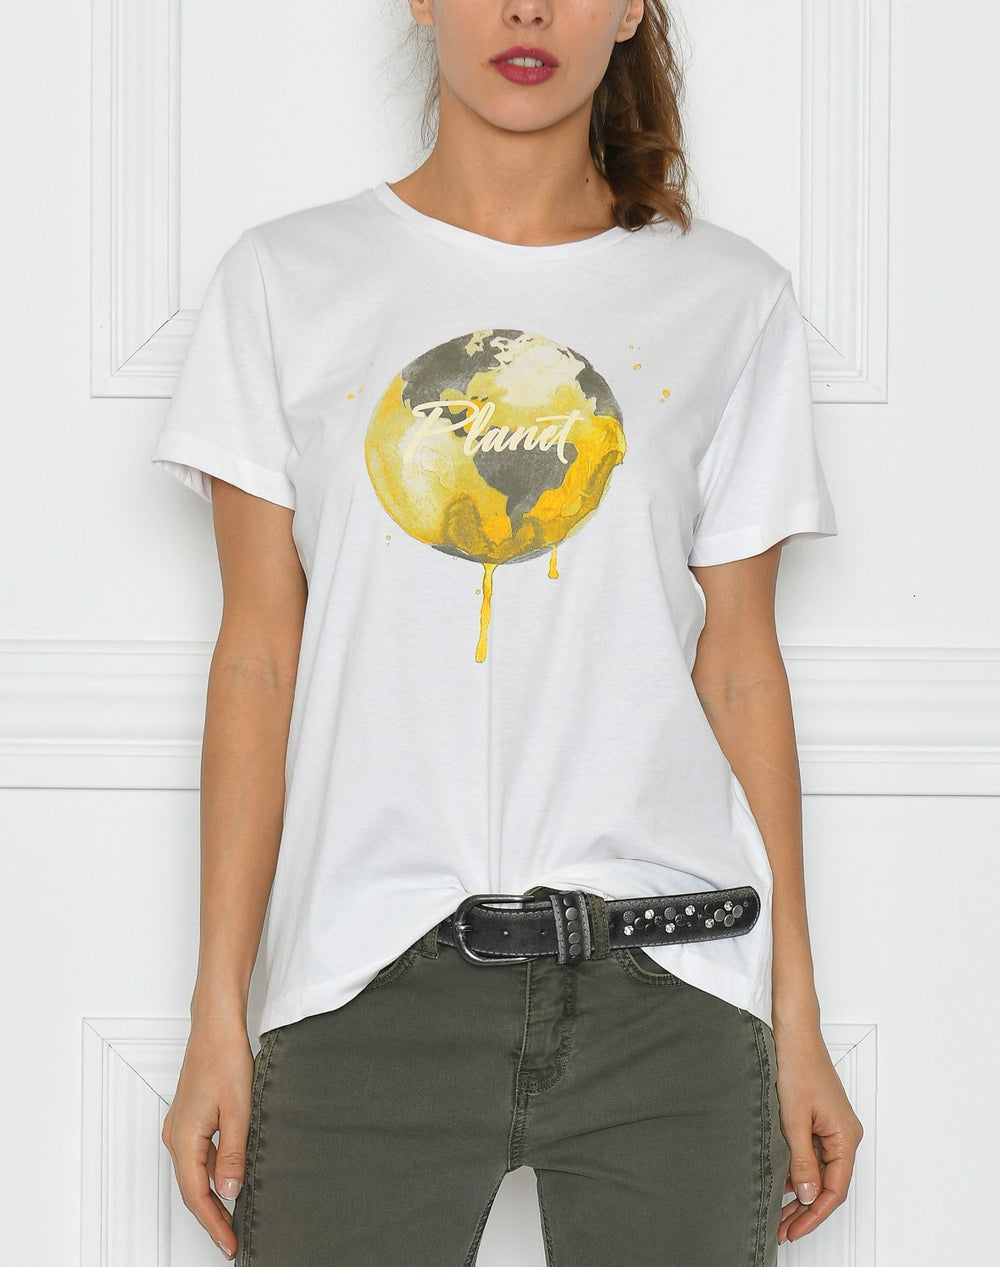 Fransa FRtiorganic 1 t-shirt special color mix 2 - Online-Mode